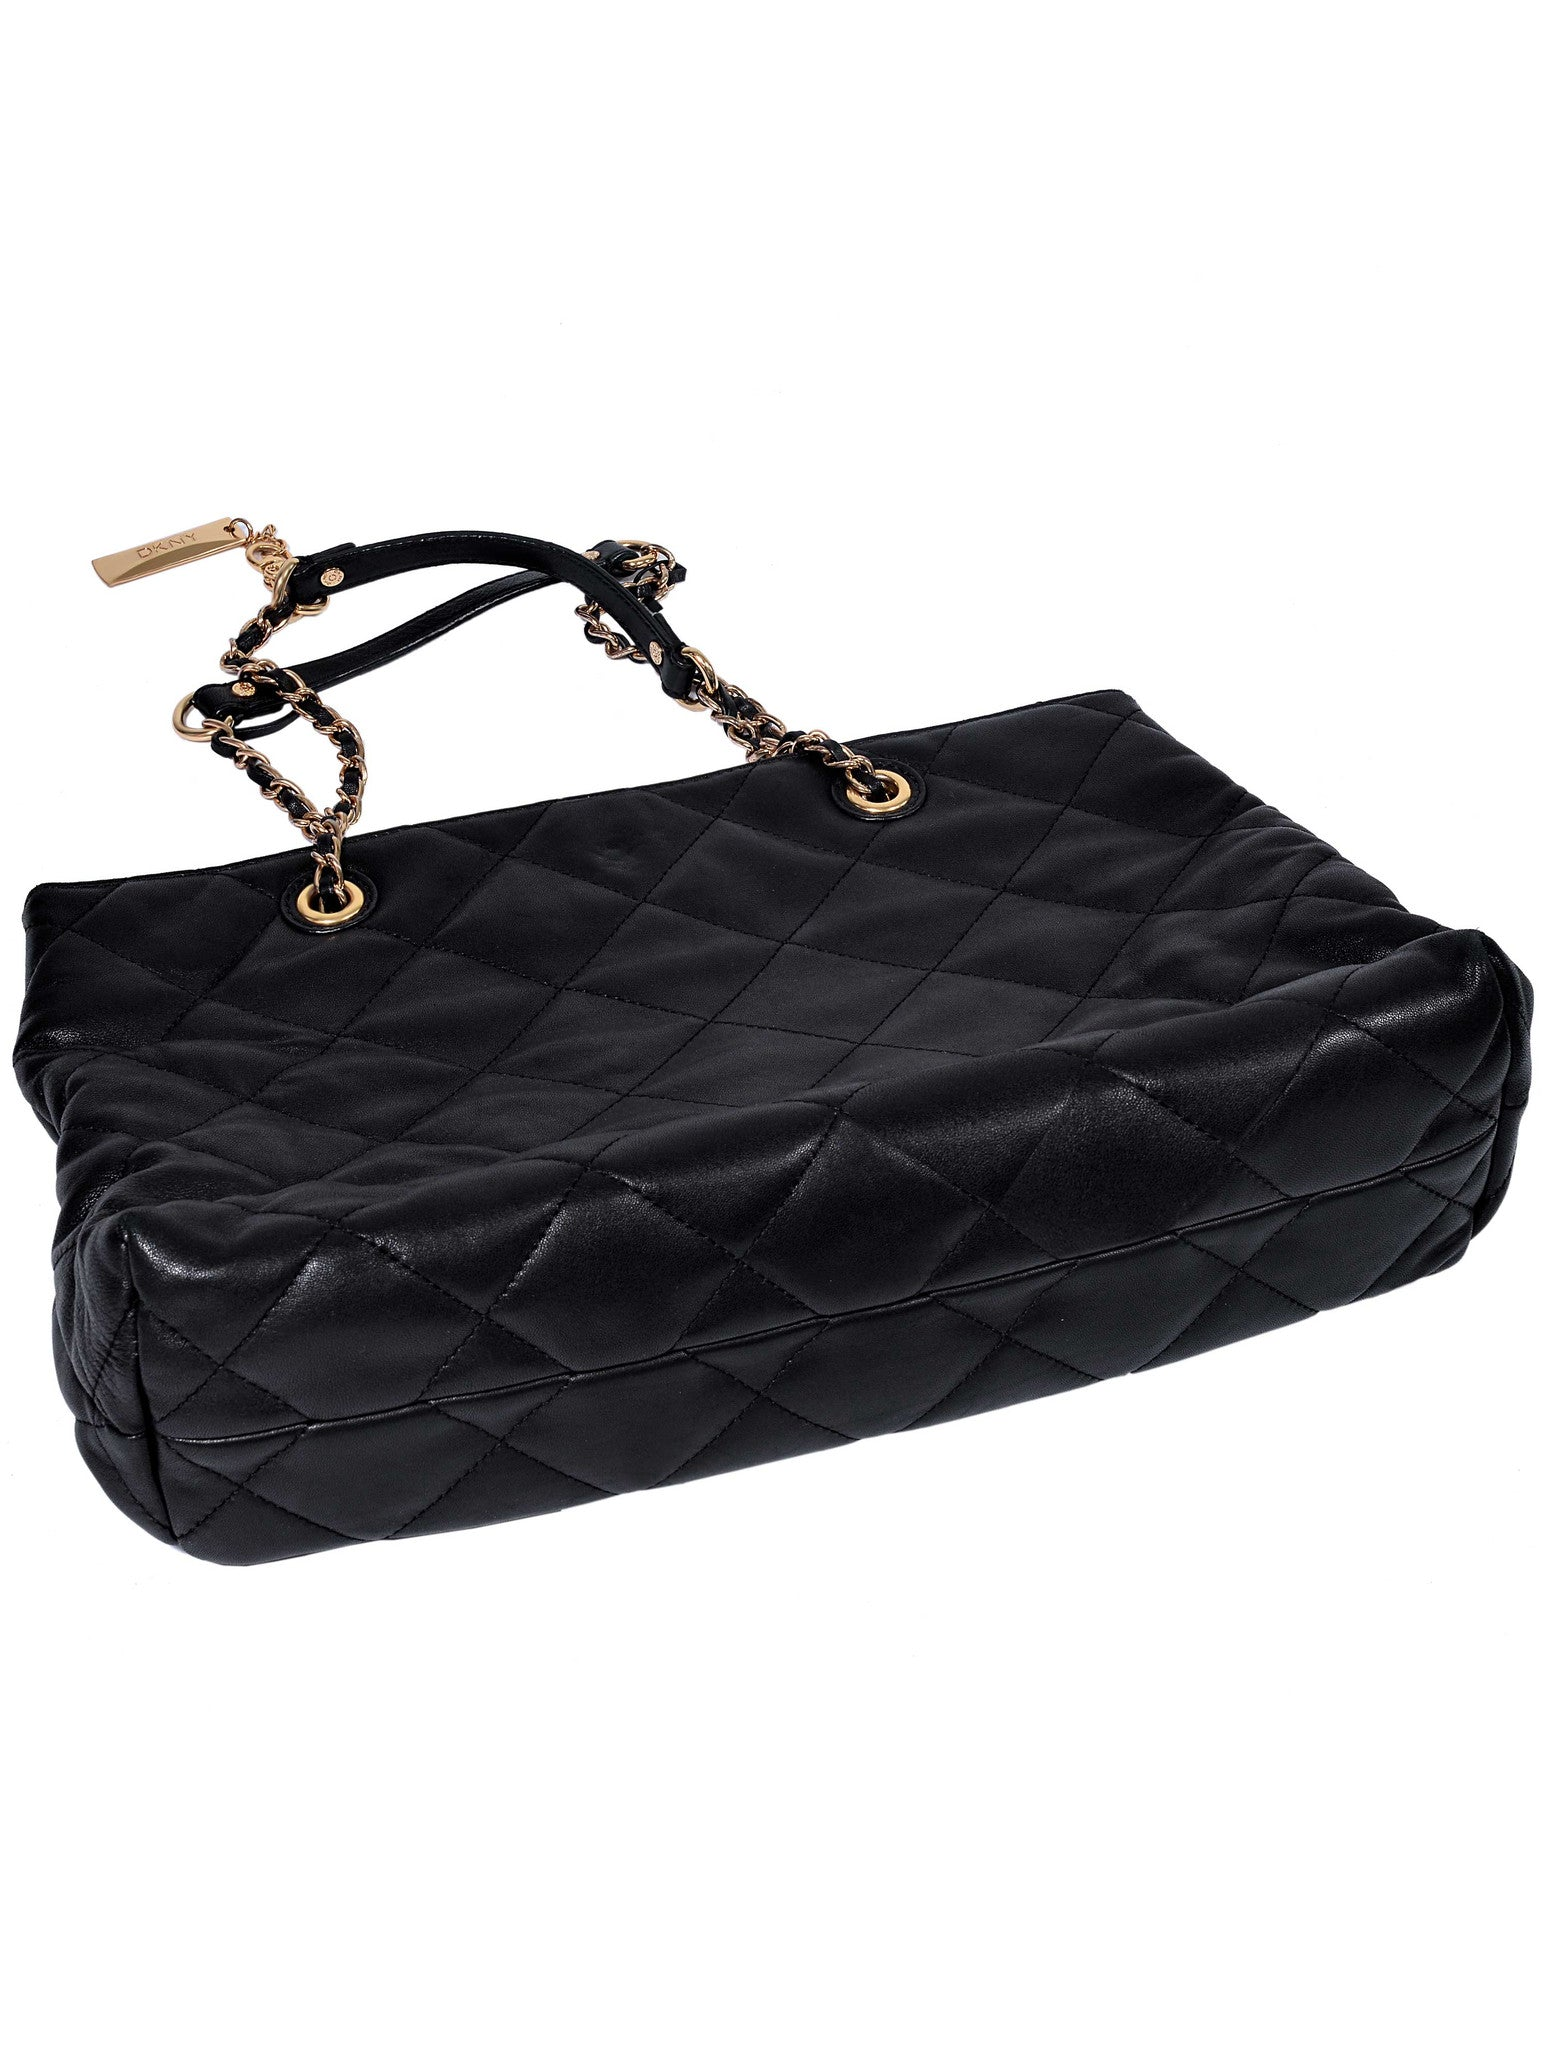 QUILTED LEATHER HANDY BAG